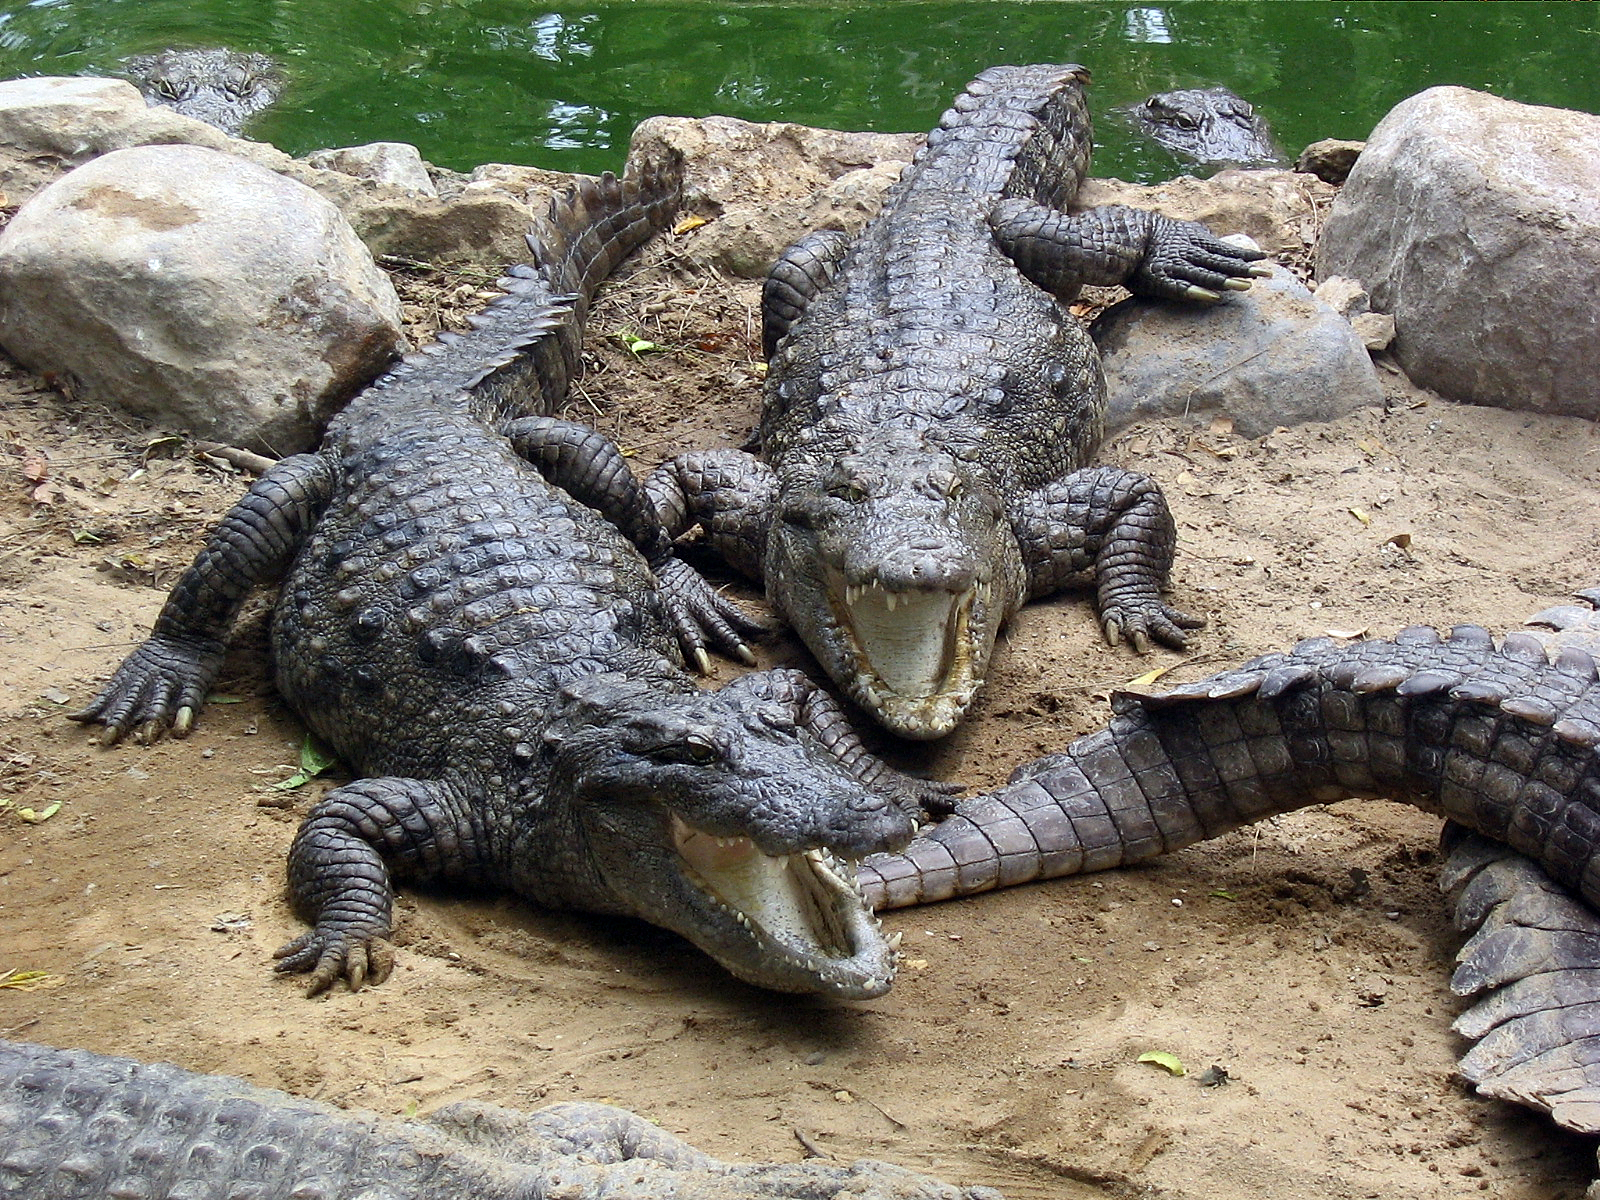 file marsh crocodiles basking